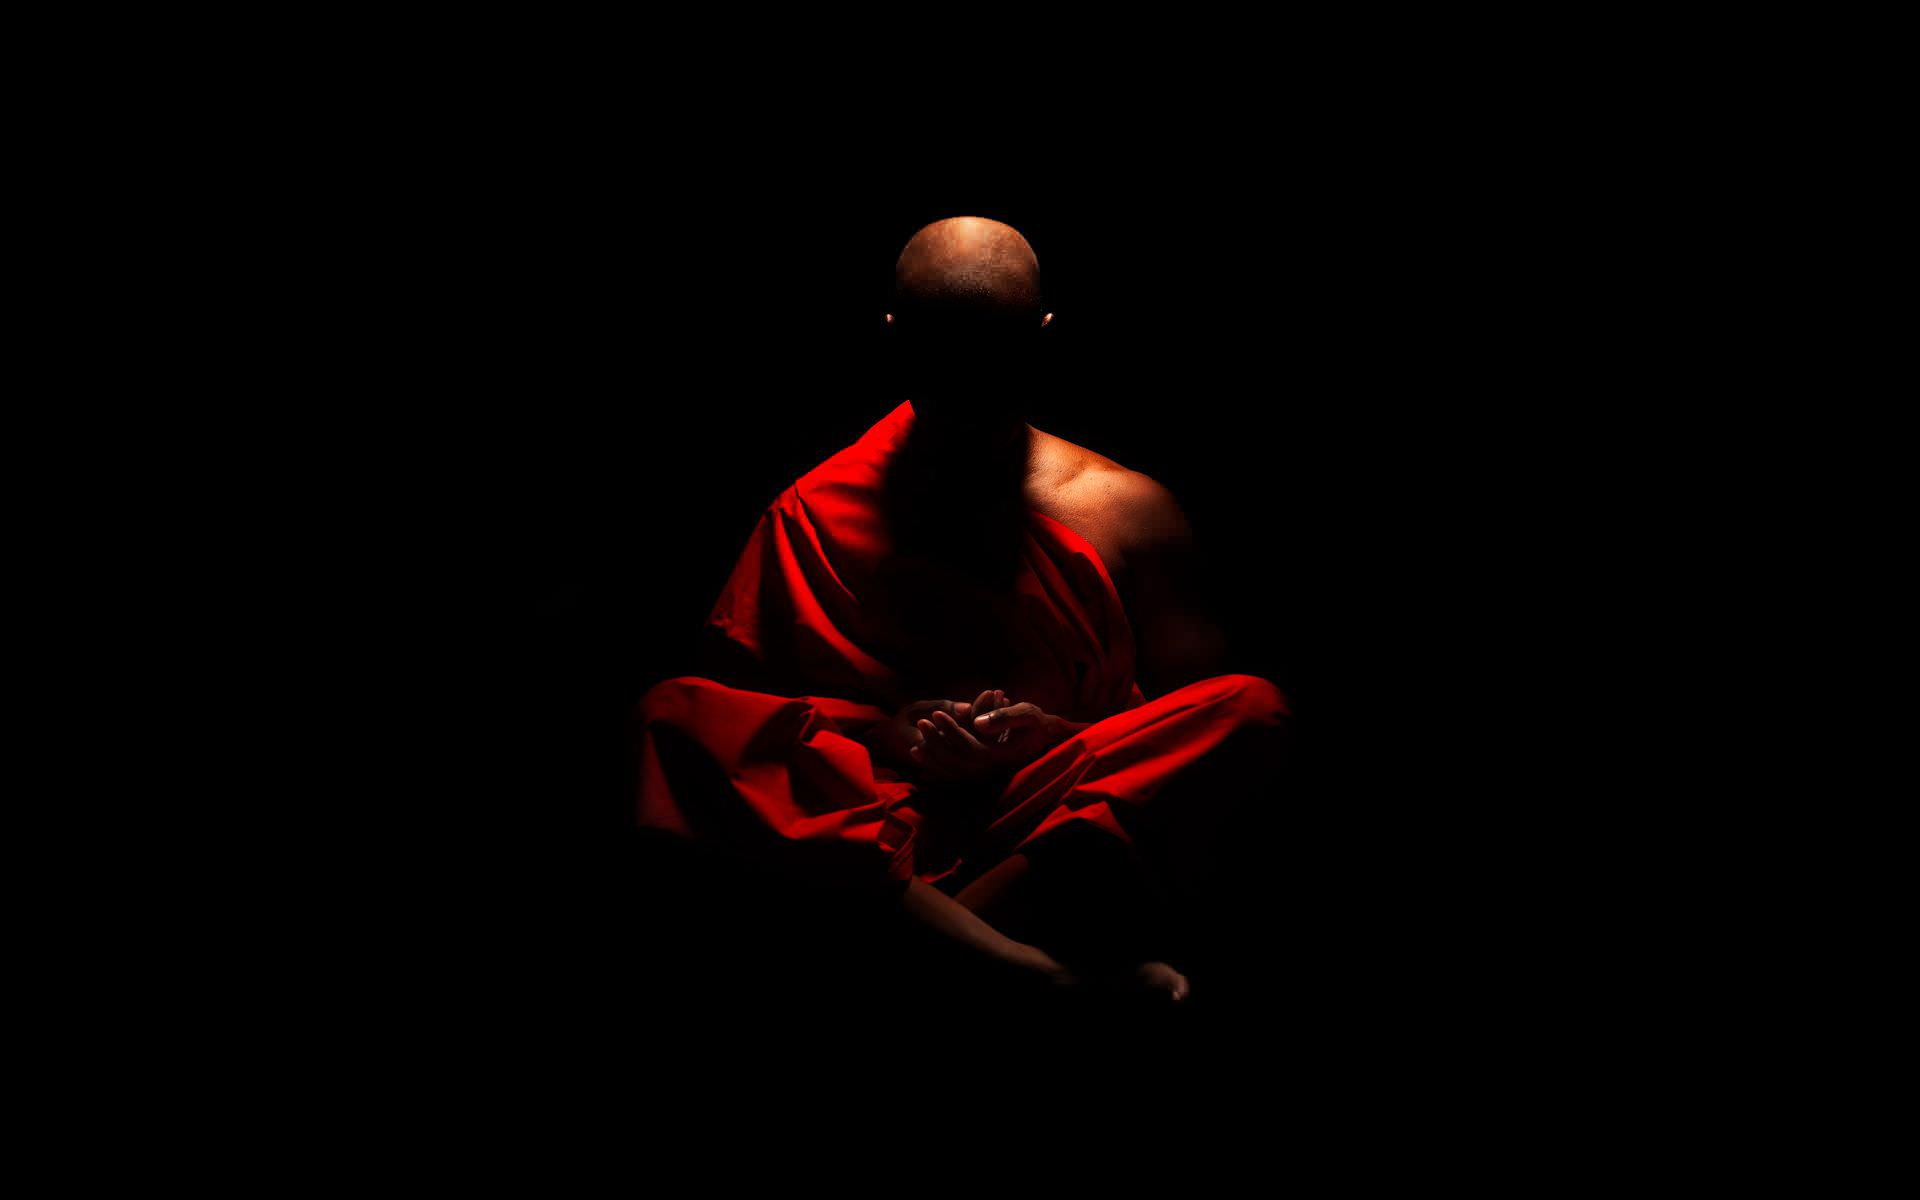 Meditation-wide-HD-wallpapers-8484